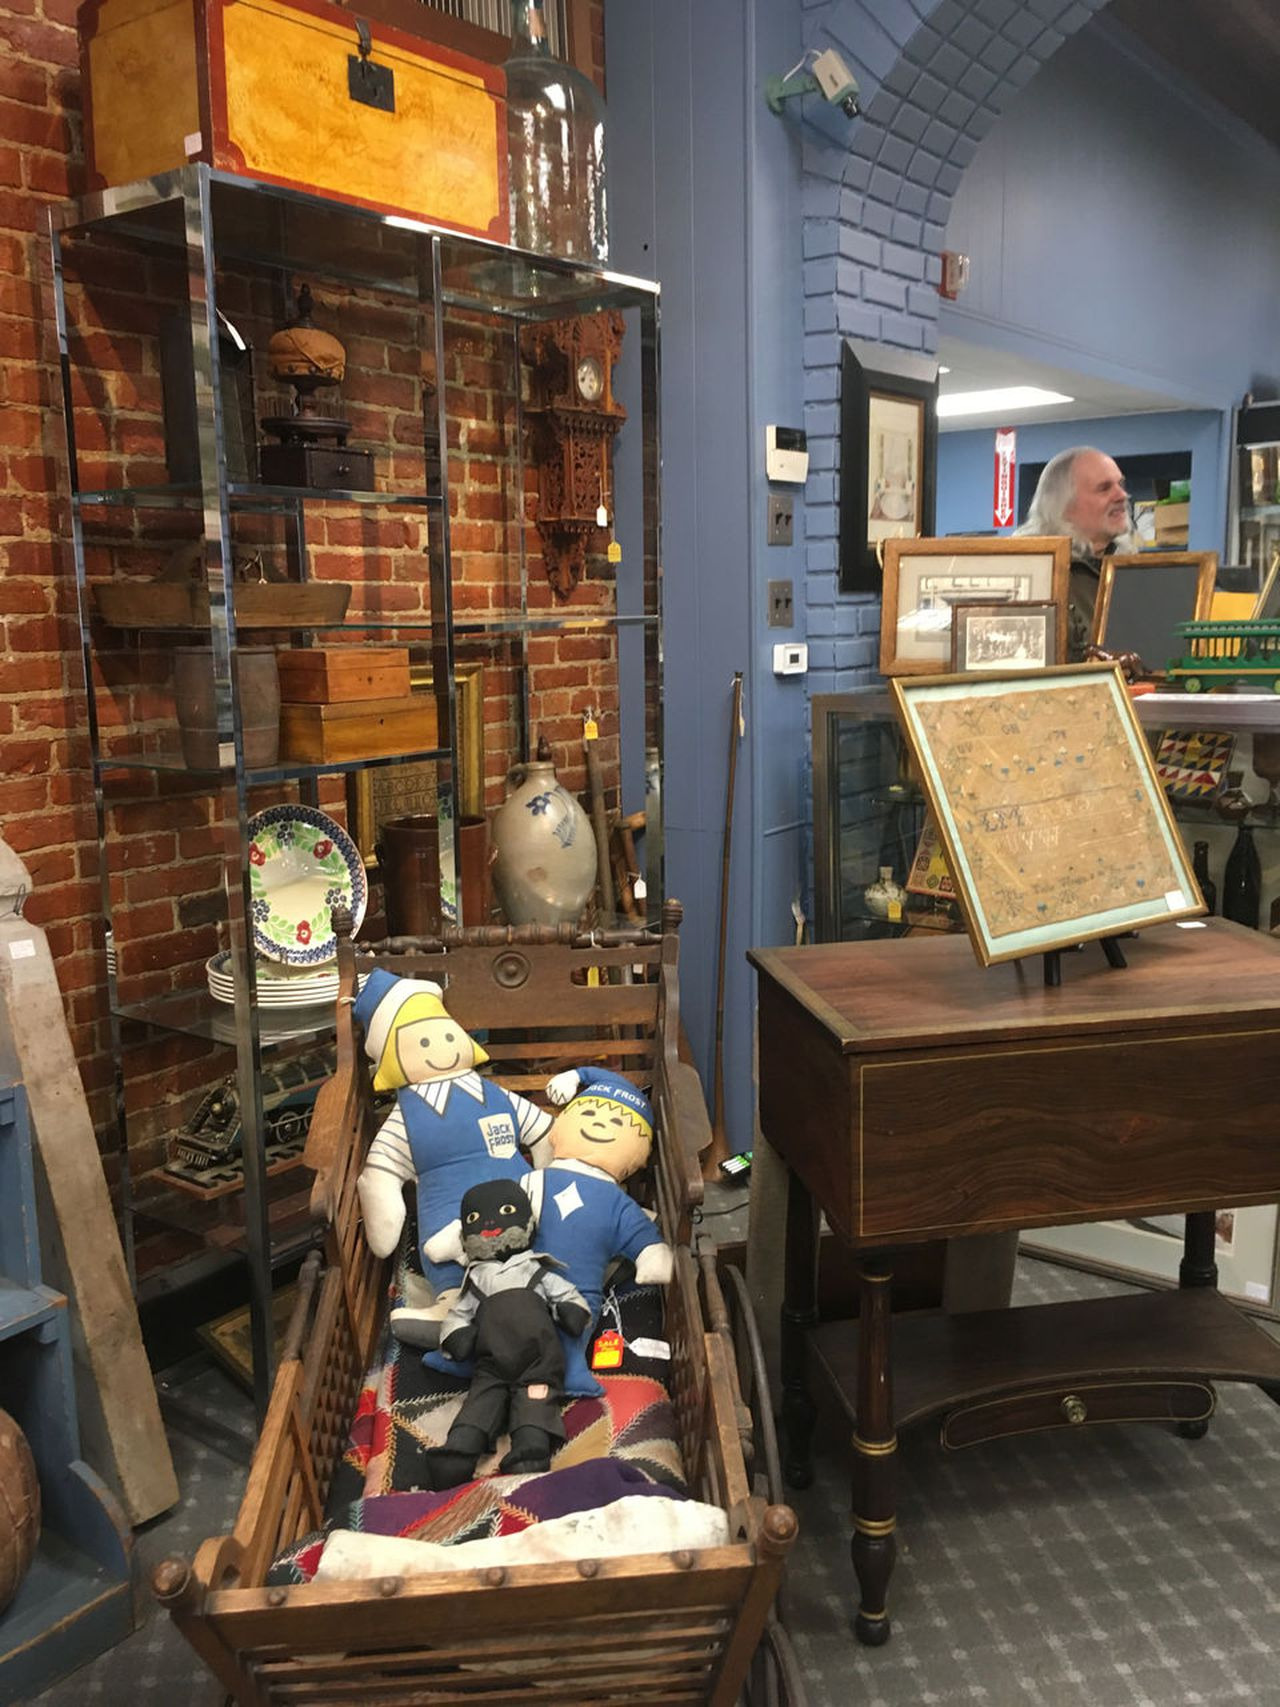 Antique Furniture Buffalo Ny Luxury Antiquing In Western Ny while Learning Part Of Buffalo S